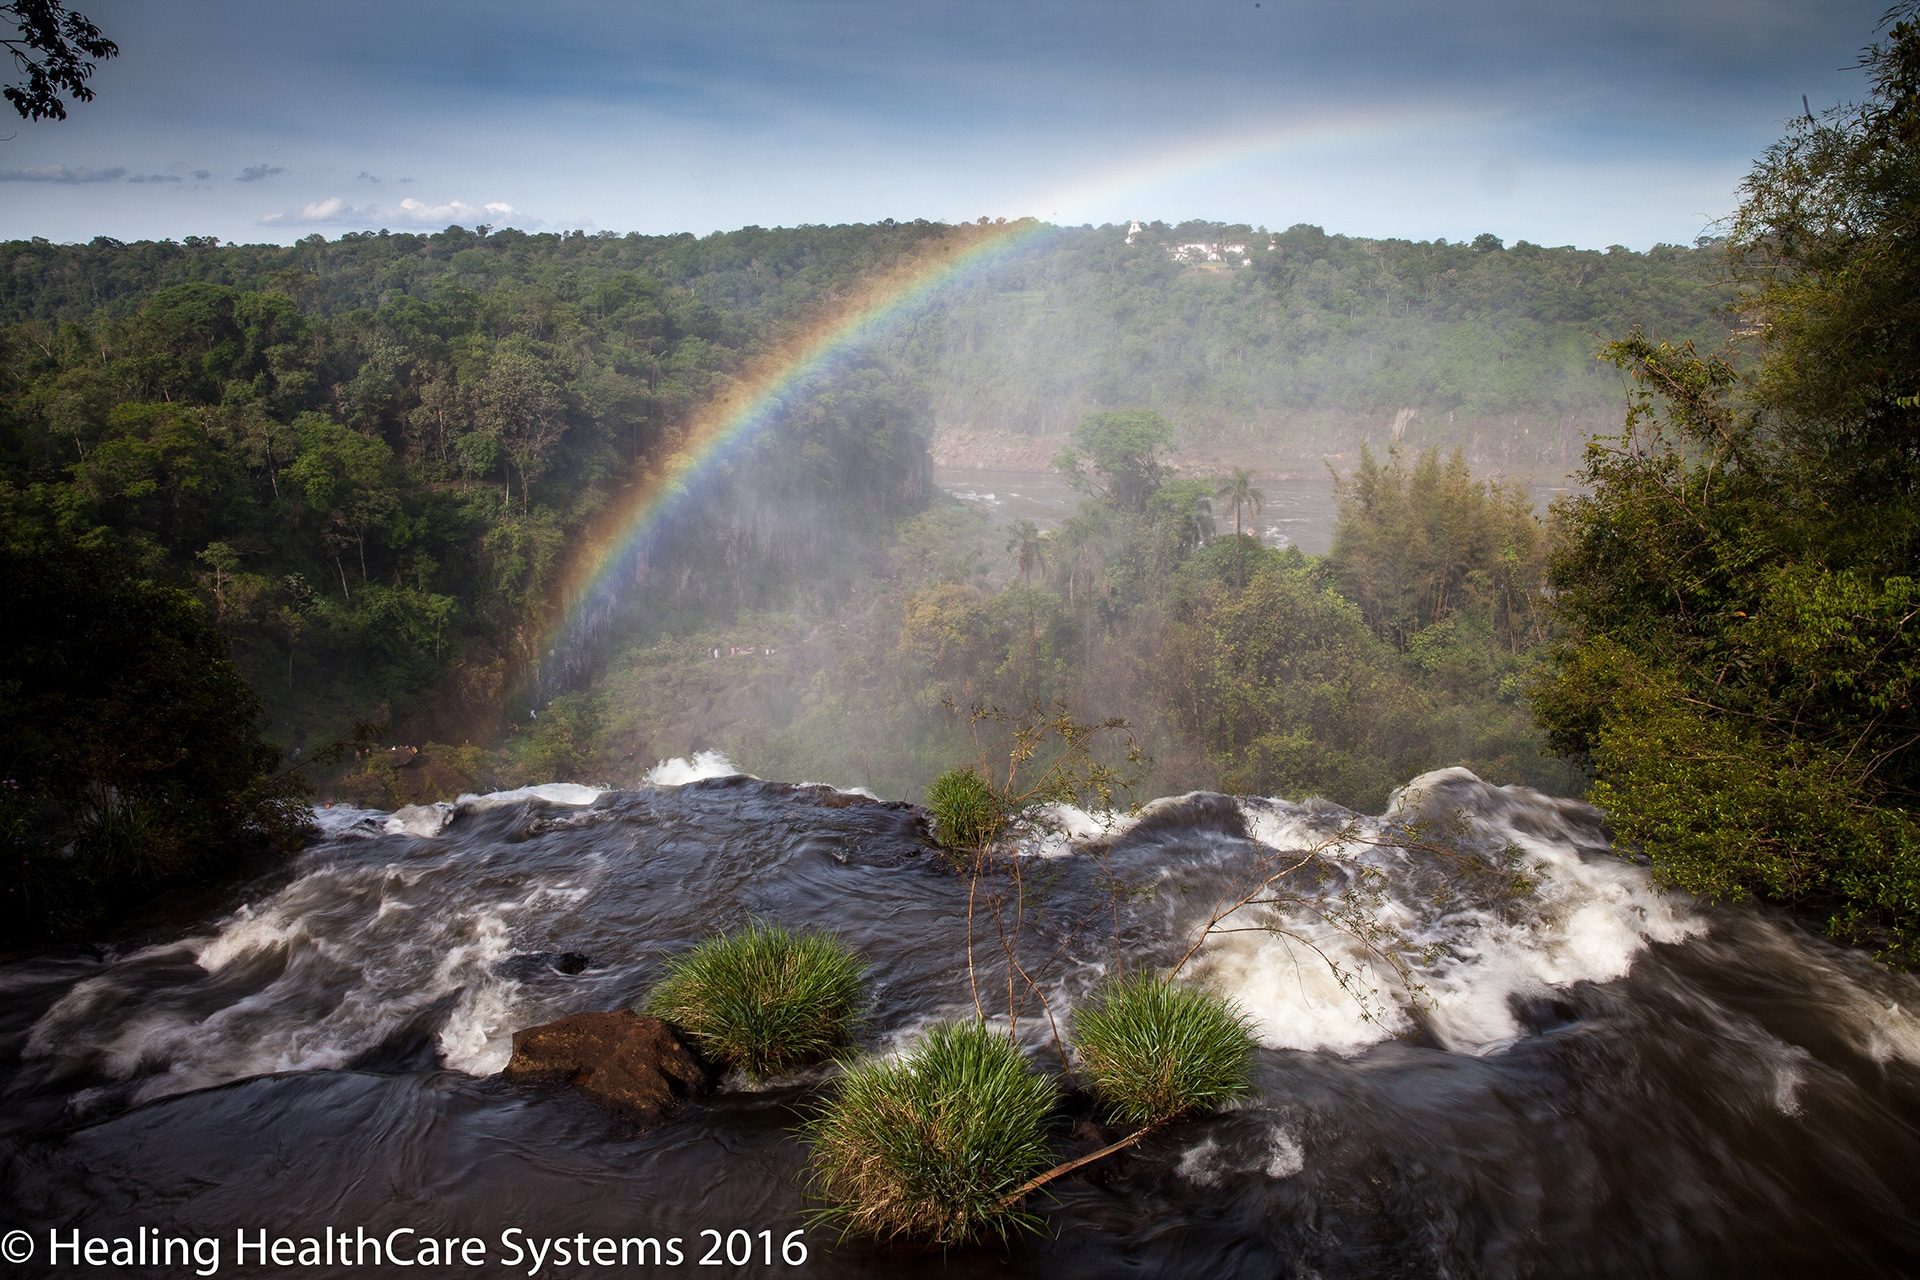 Patagonia South America >> Iguazu Falls - C.A.R.E. Channel - Healing HealthCare Systems